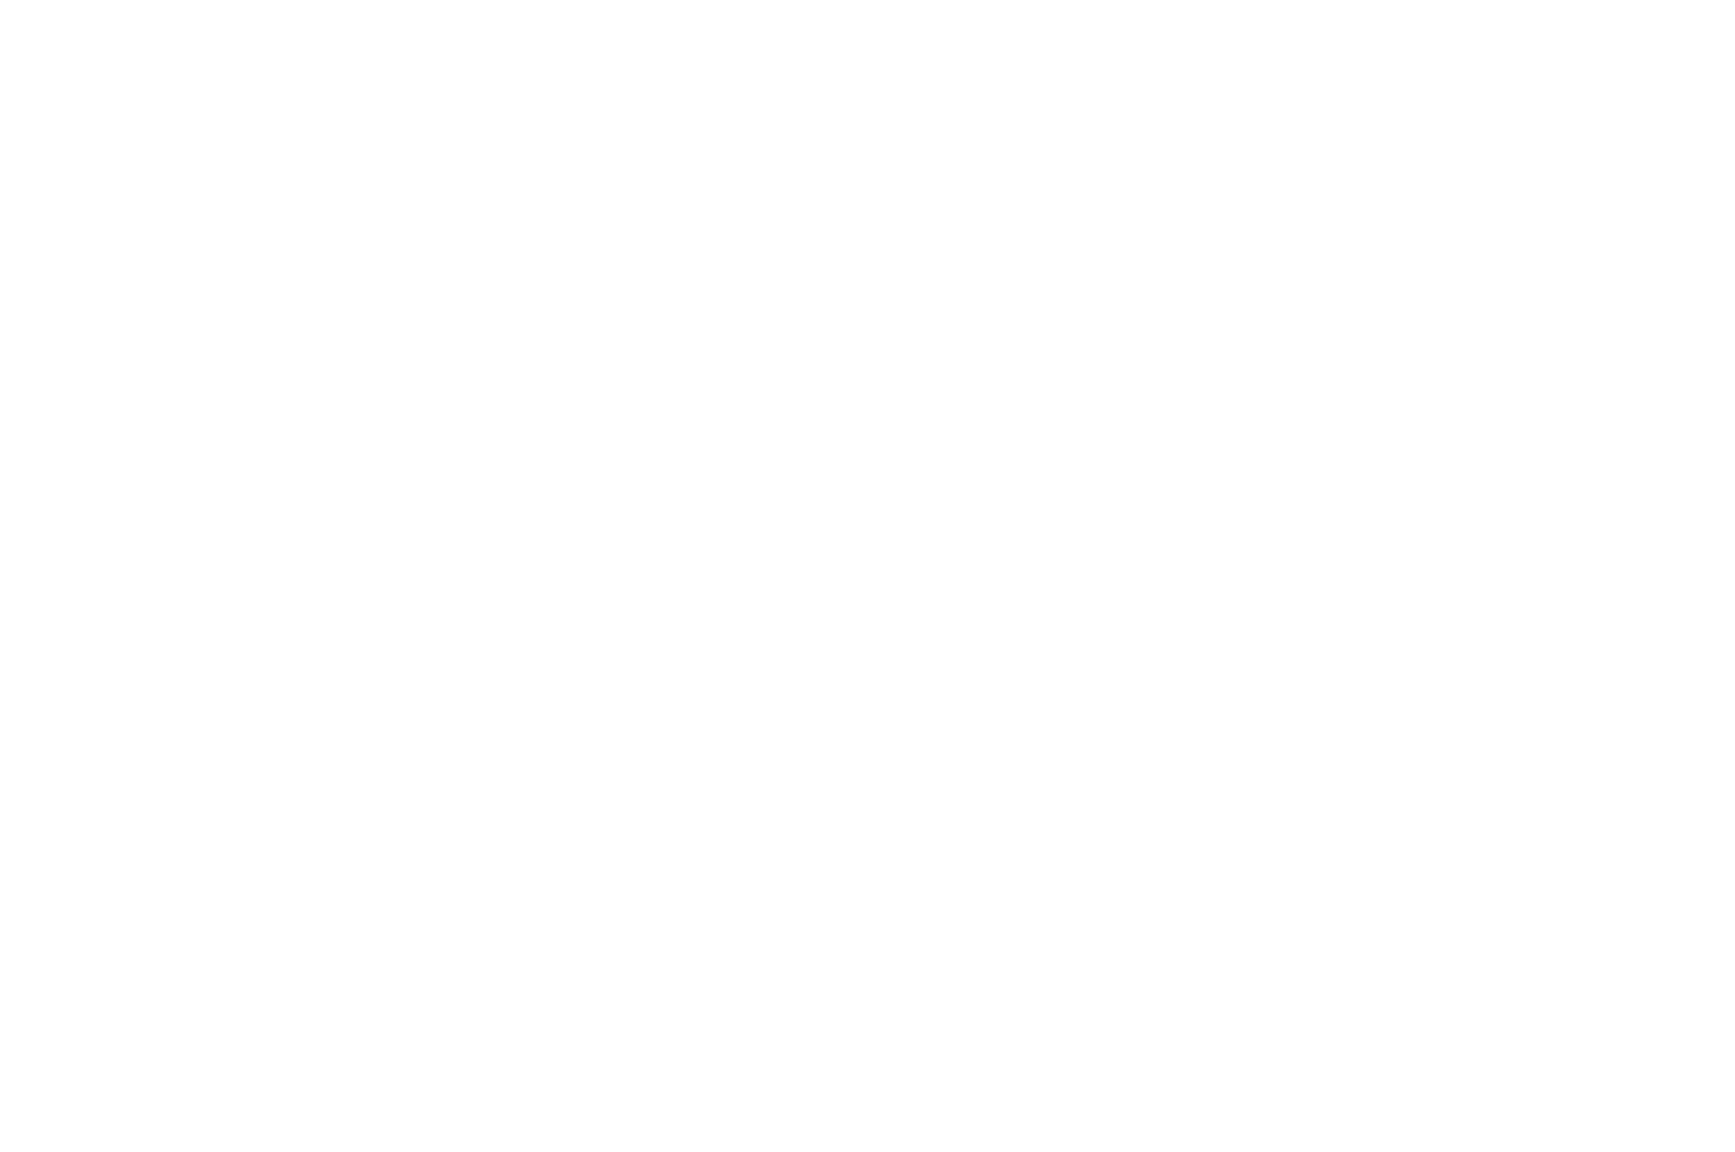 COMMENDATION - Red Ditch Halloween Film Festival - 2016